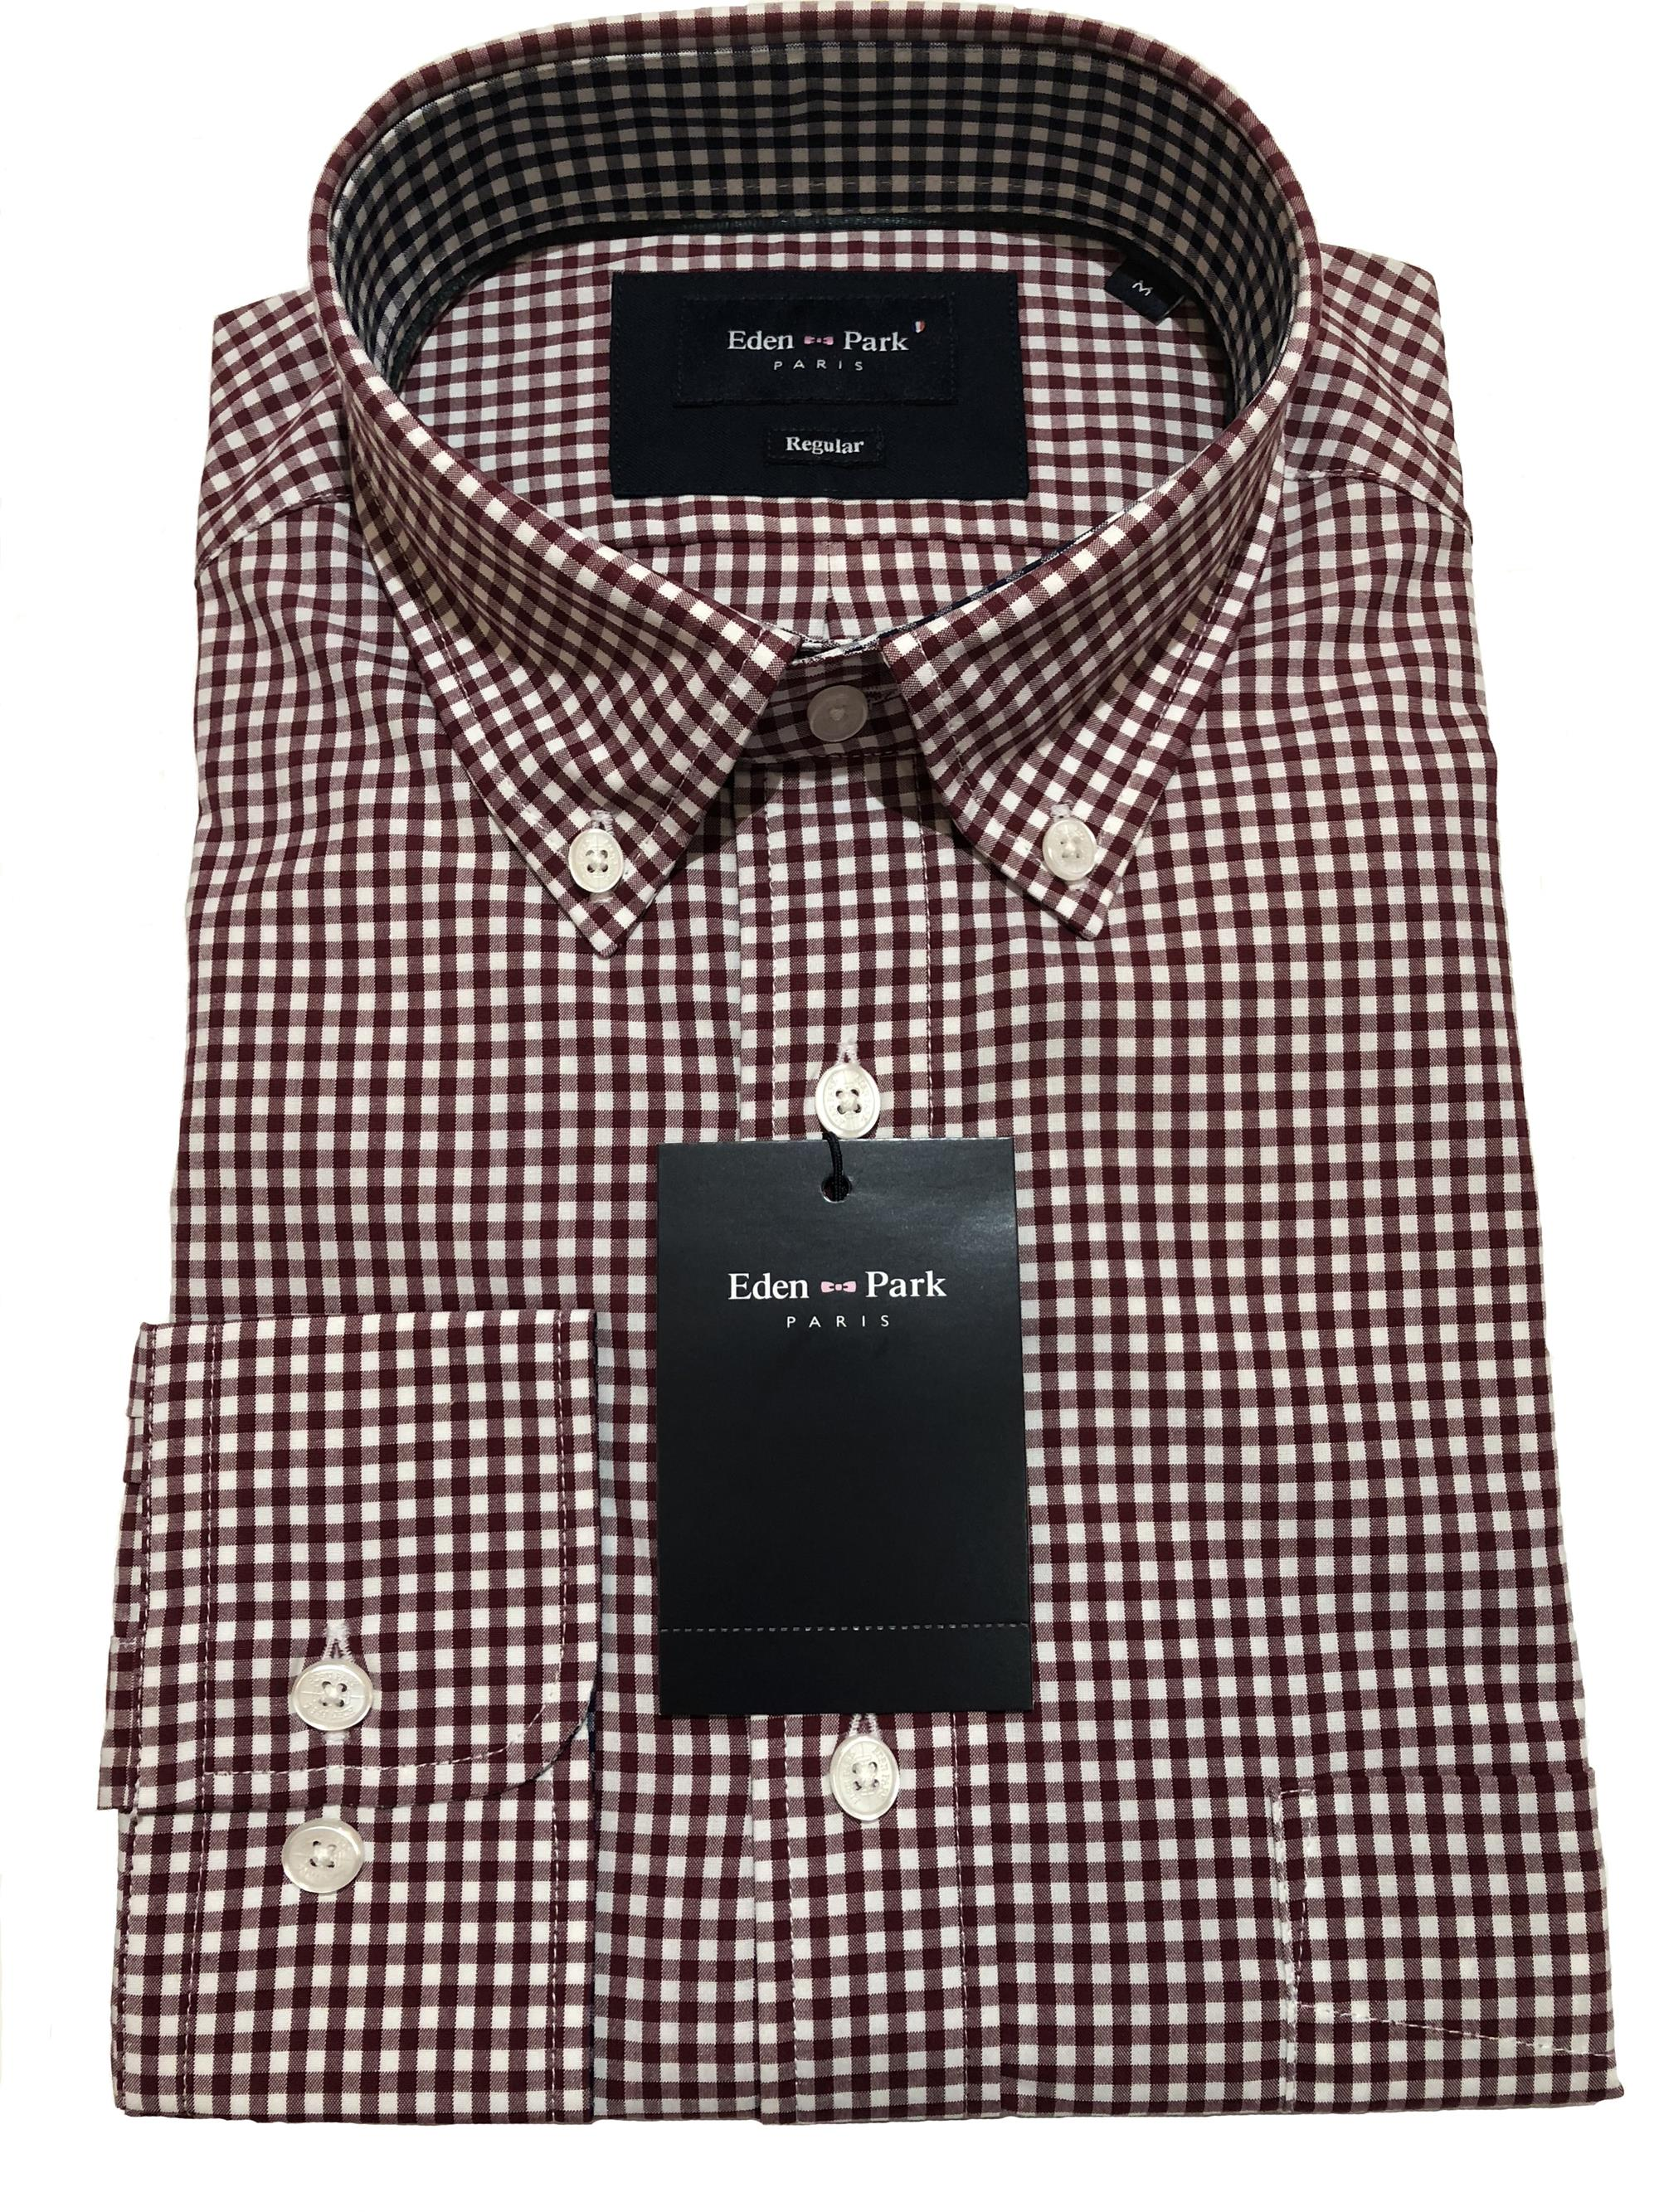 eden park classic long sleeve gingham check shirt (red)